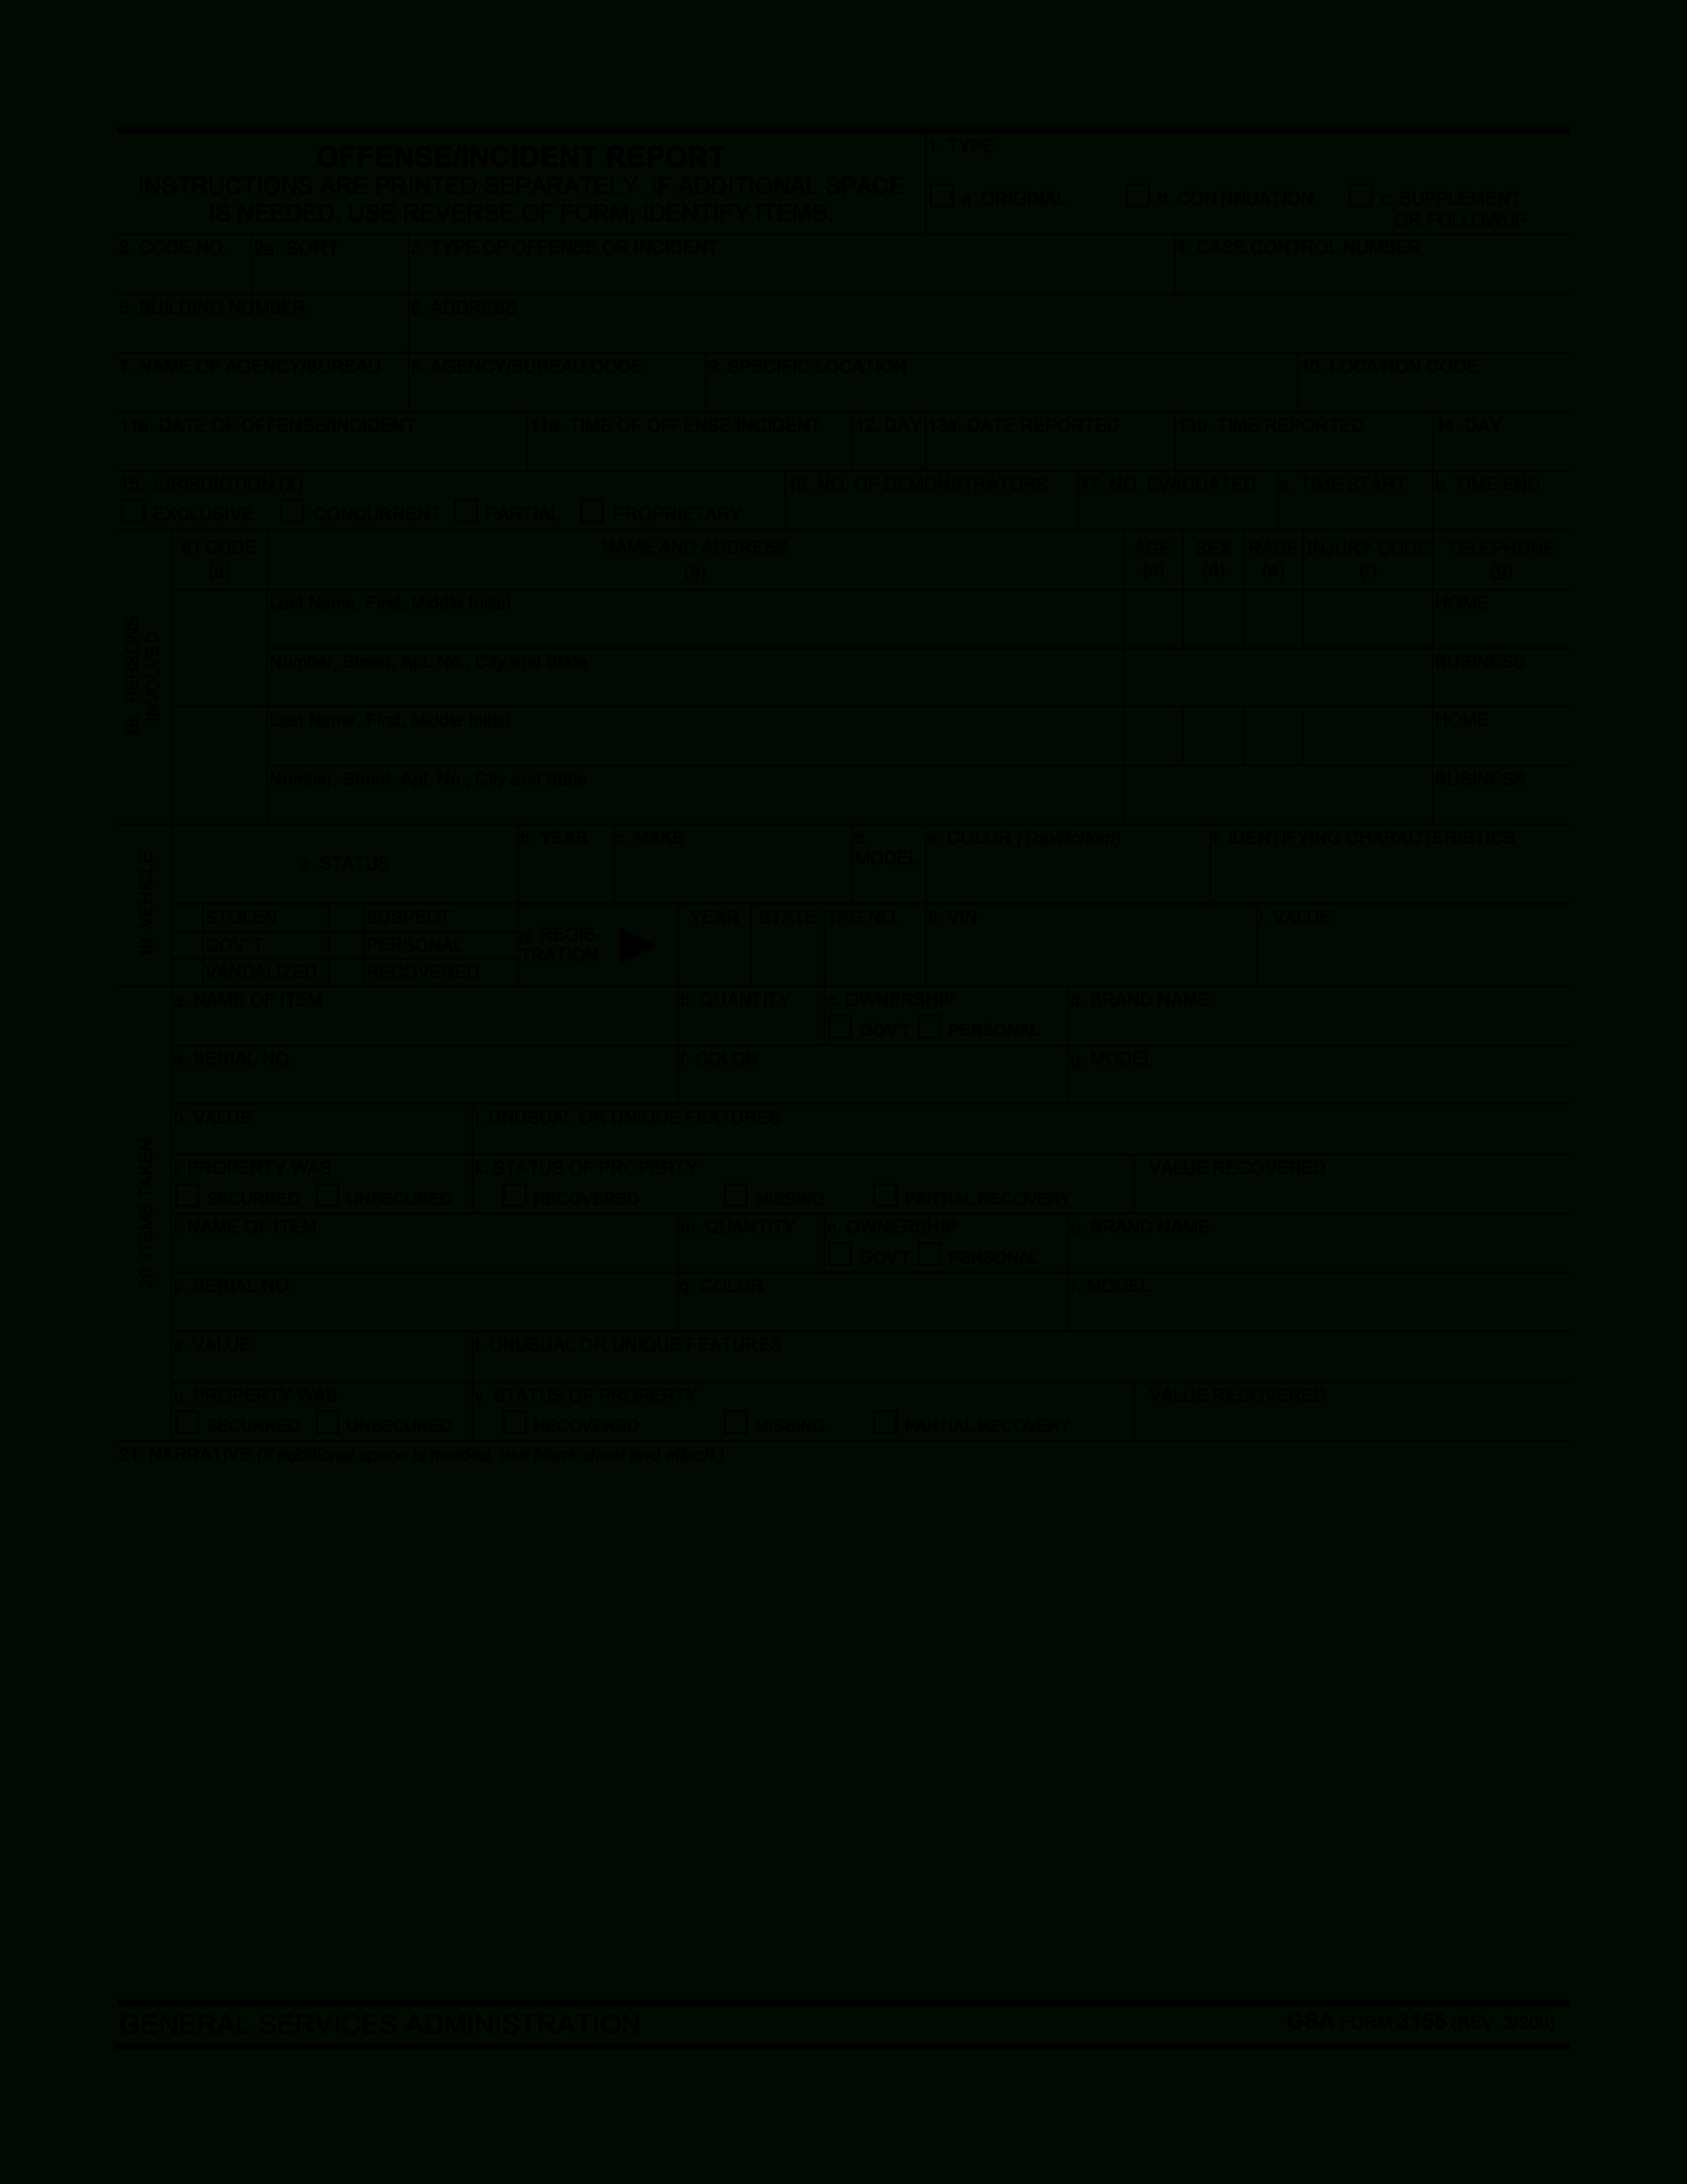 Blank Police Report Template   Templates At For Blank Police Report Template